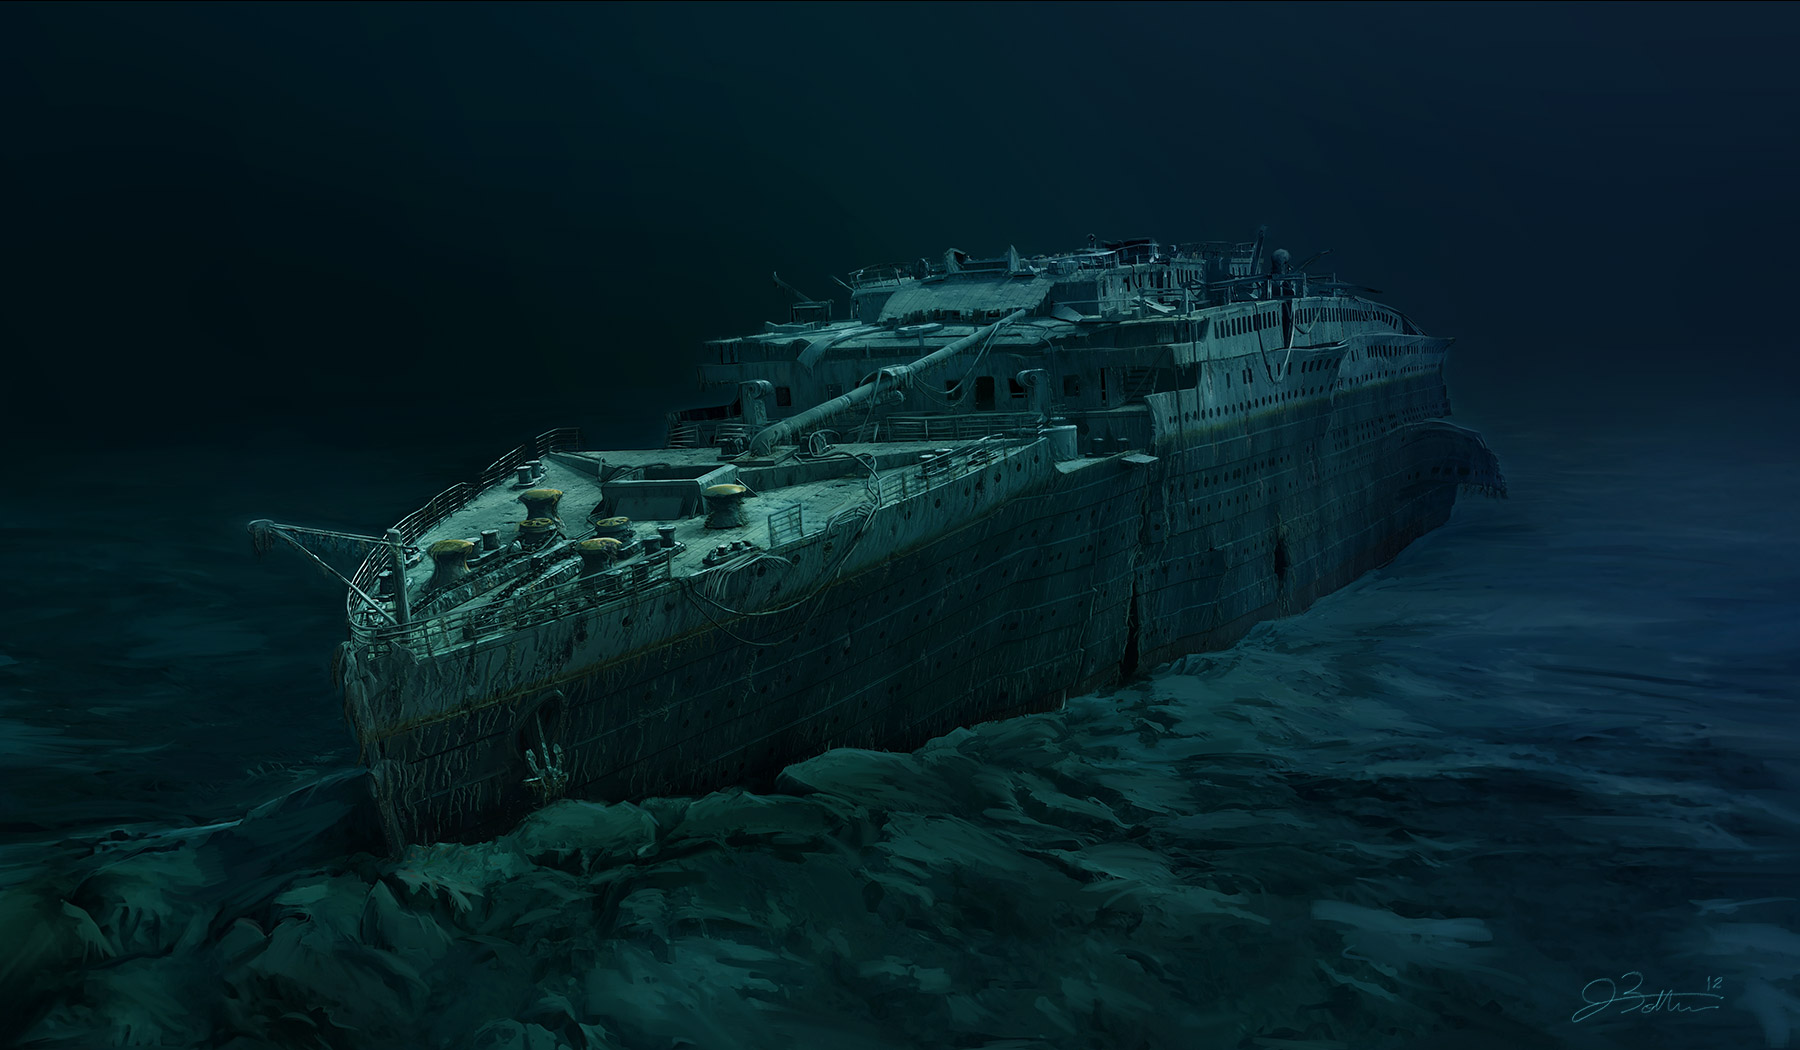 Rms lusitania wreck rms lusitania wreck quotes - Titanic Remembered